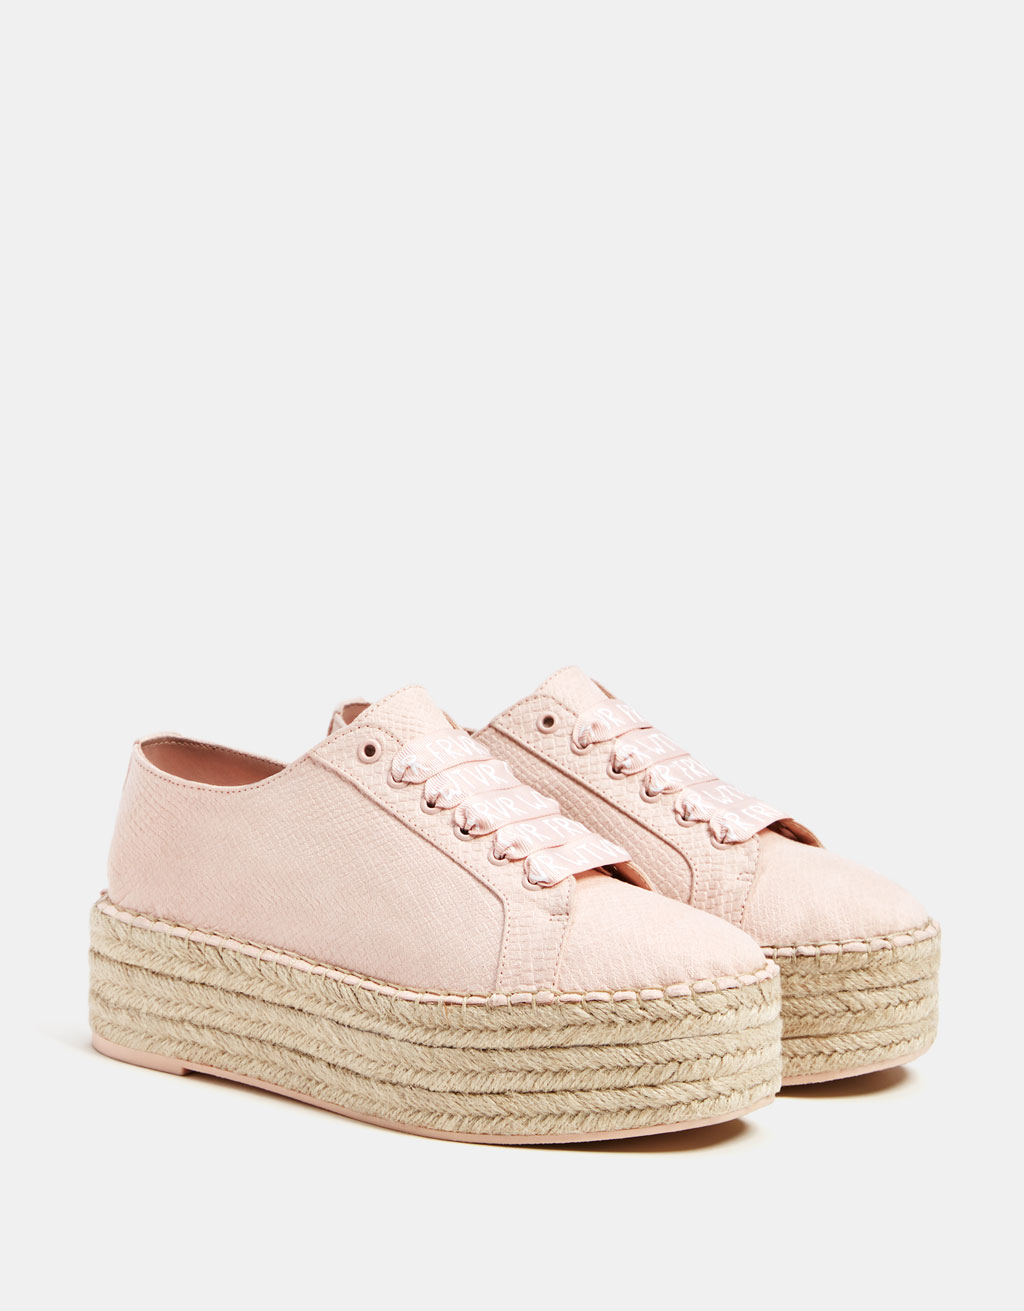 Embossed trainers with jute platforms